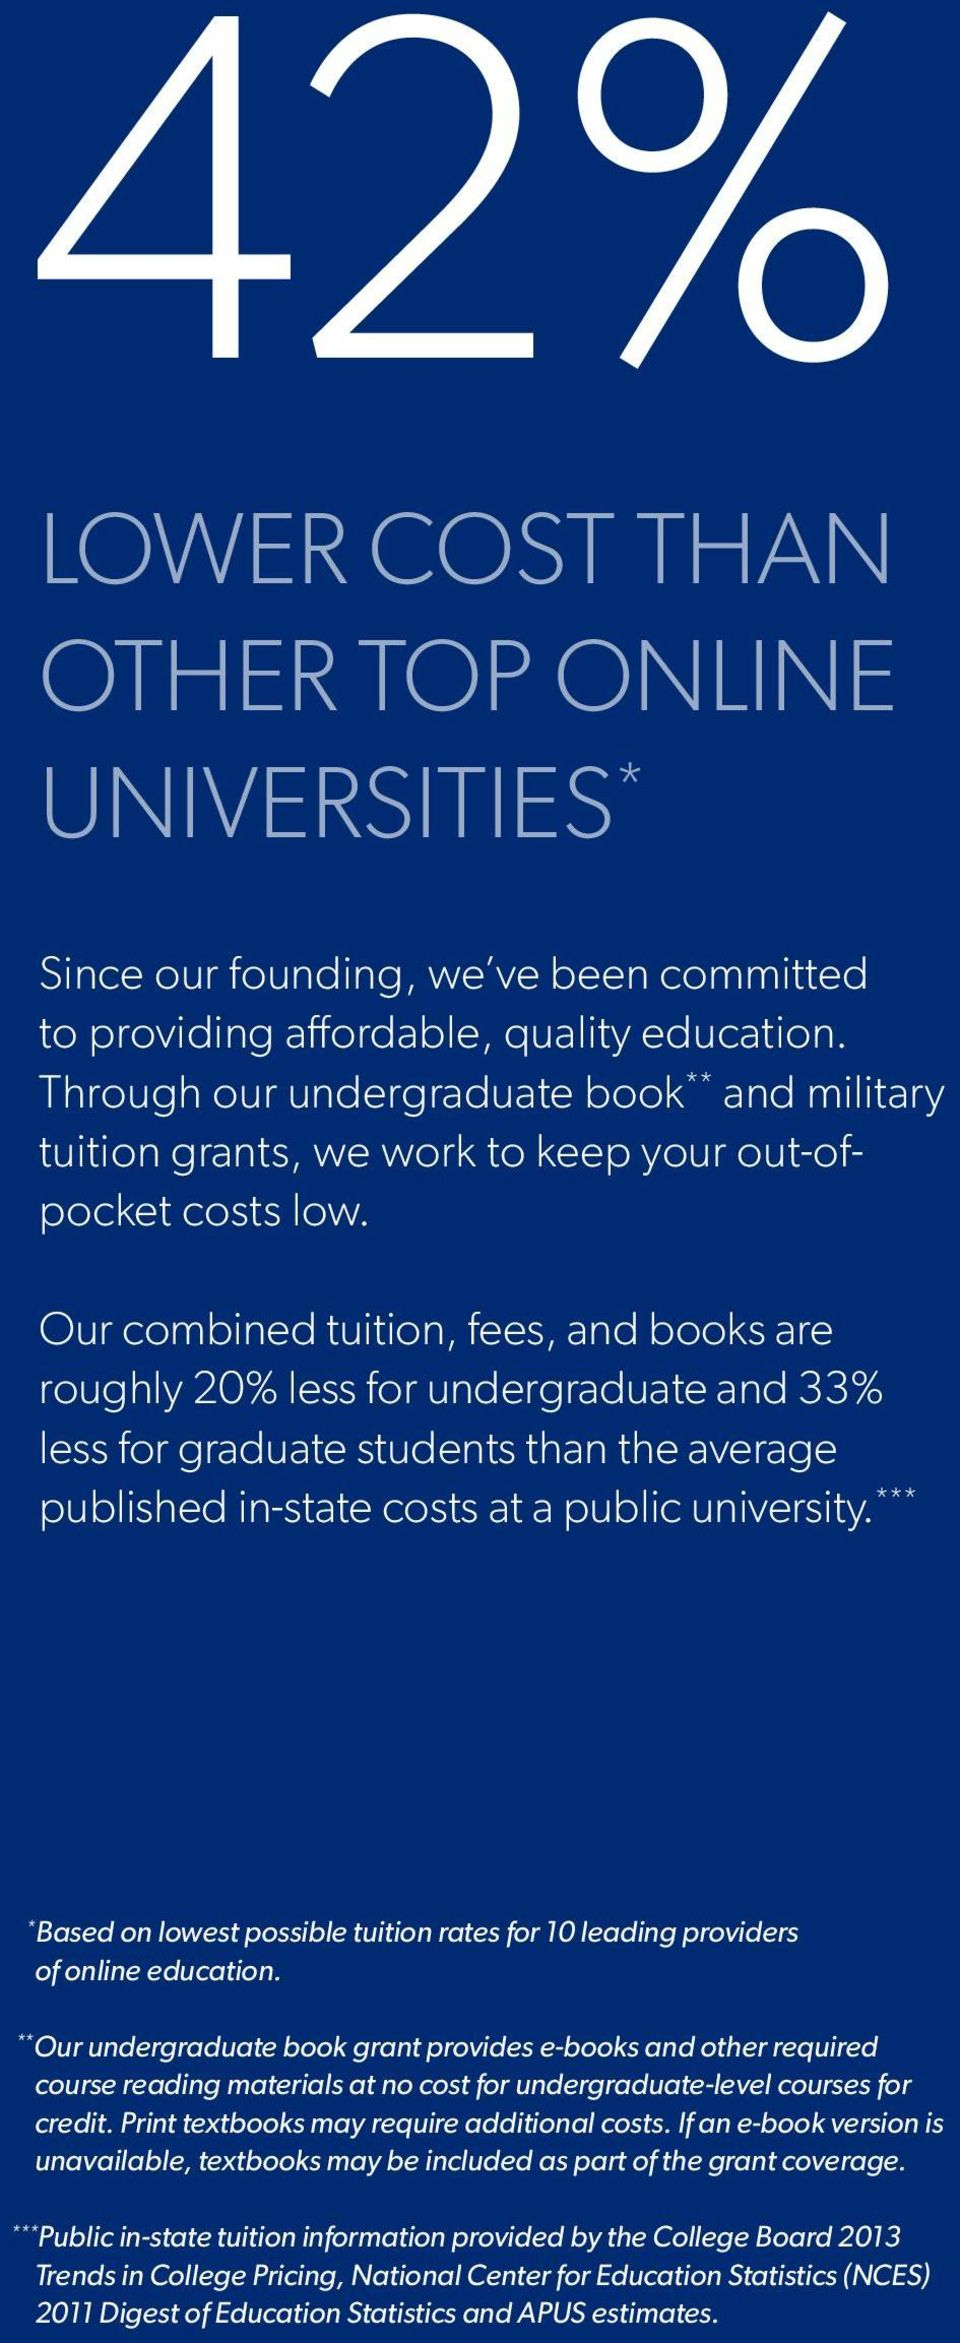 Our combined tuition, fees, and books are roughly 20% less for undergraduate and 33% less for graduate students than the average published in-state costs at a public university.